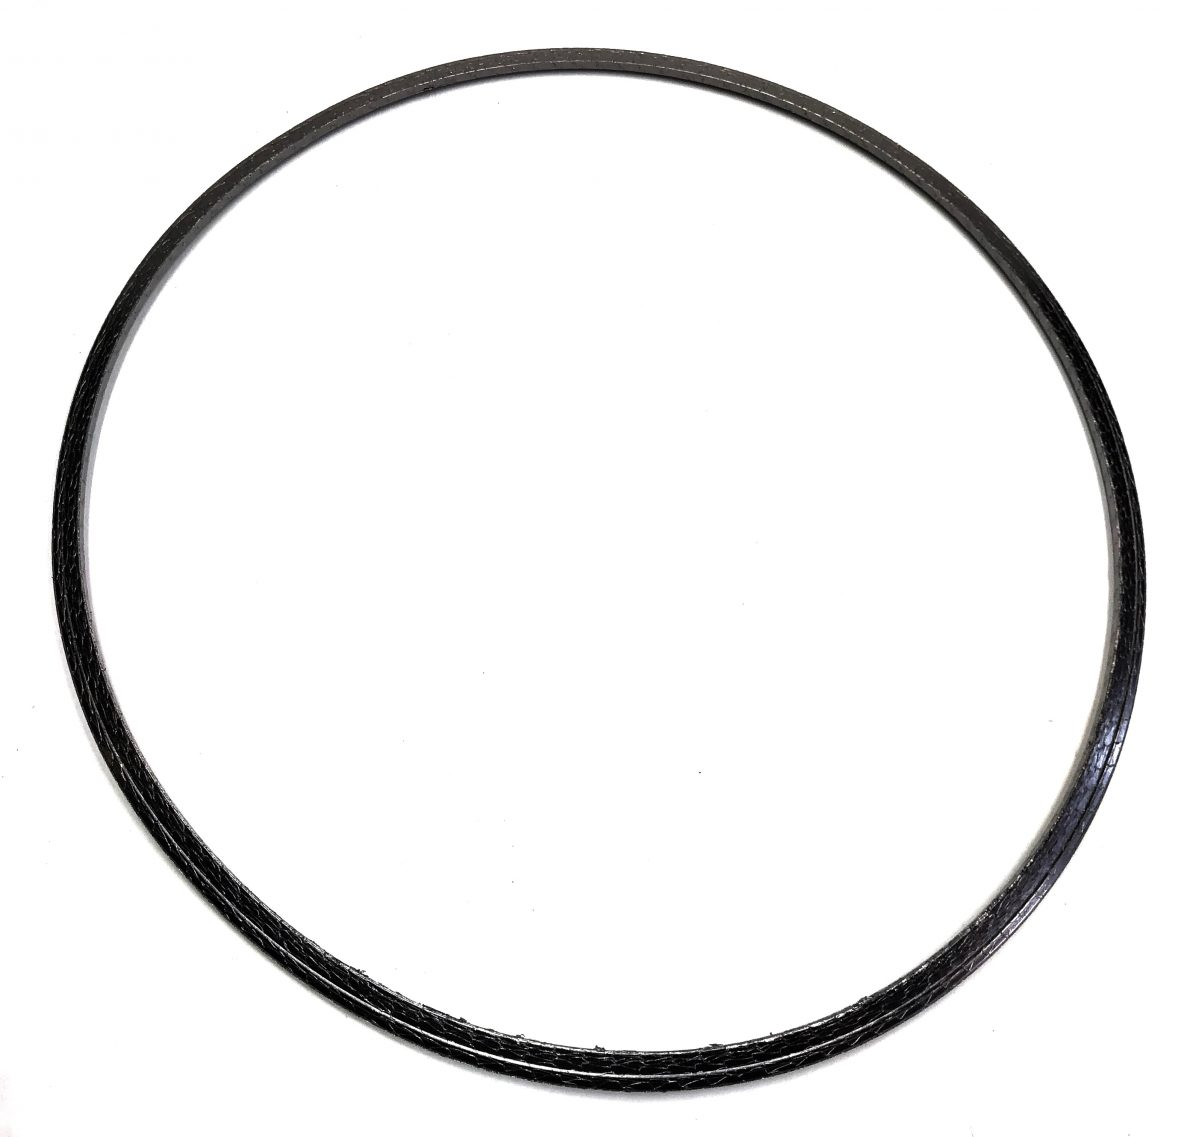 Cummins / Volvo / Mack DPF Gasket OE Part 5304868 - ENV-G-1061